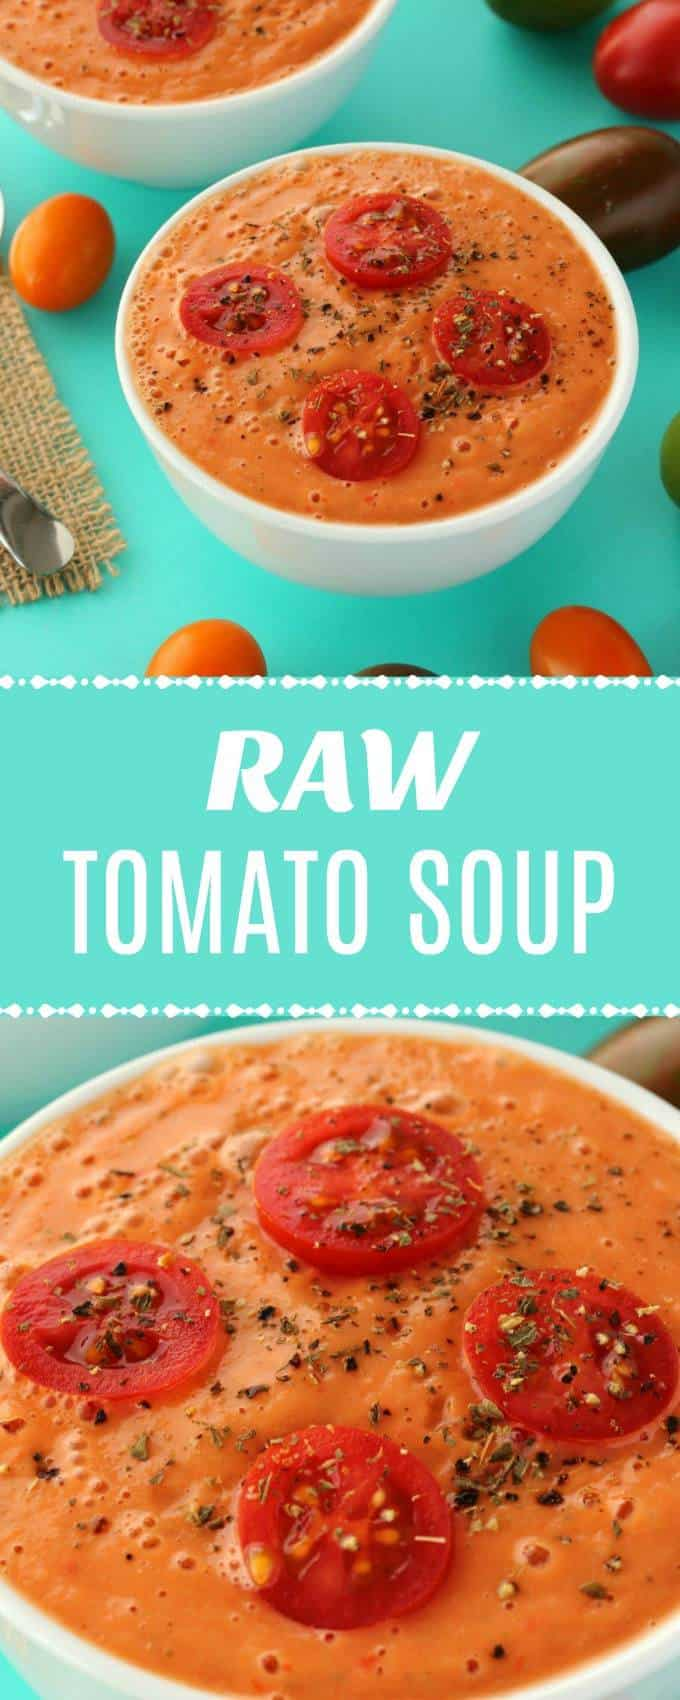 Deliciously creamy raw tomato soup. Made entirely from fresh raw ingredients, this tomato gazpacho can be whipped up in 5 minutes and is as gourmet as it gets. Ideal as an appetizer. Raw, vegan and gluten-free. | lovingitvegan.com